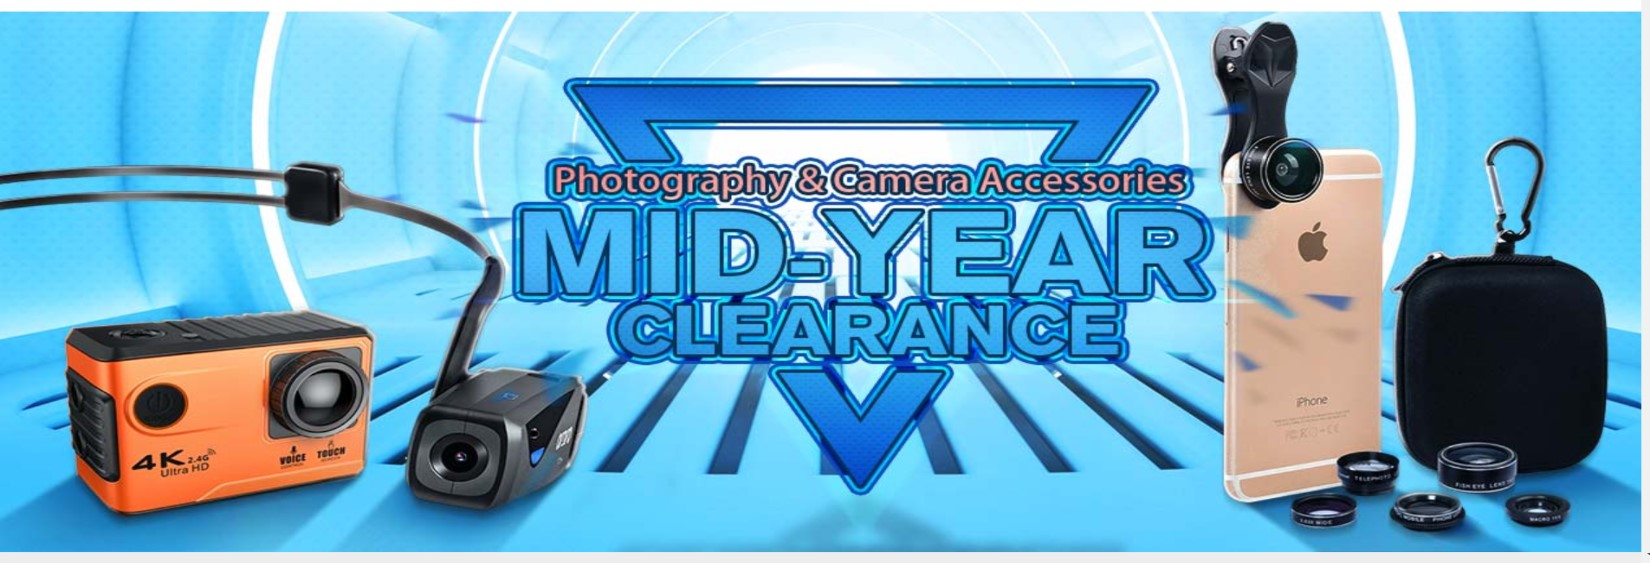 Photography & Camera Accessories